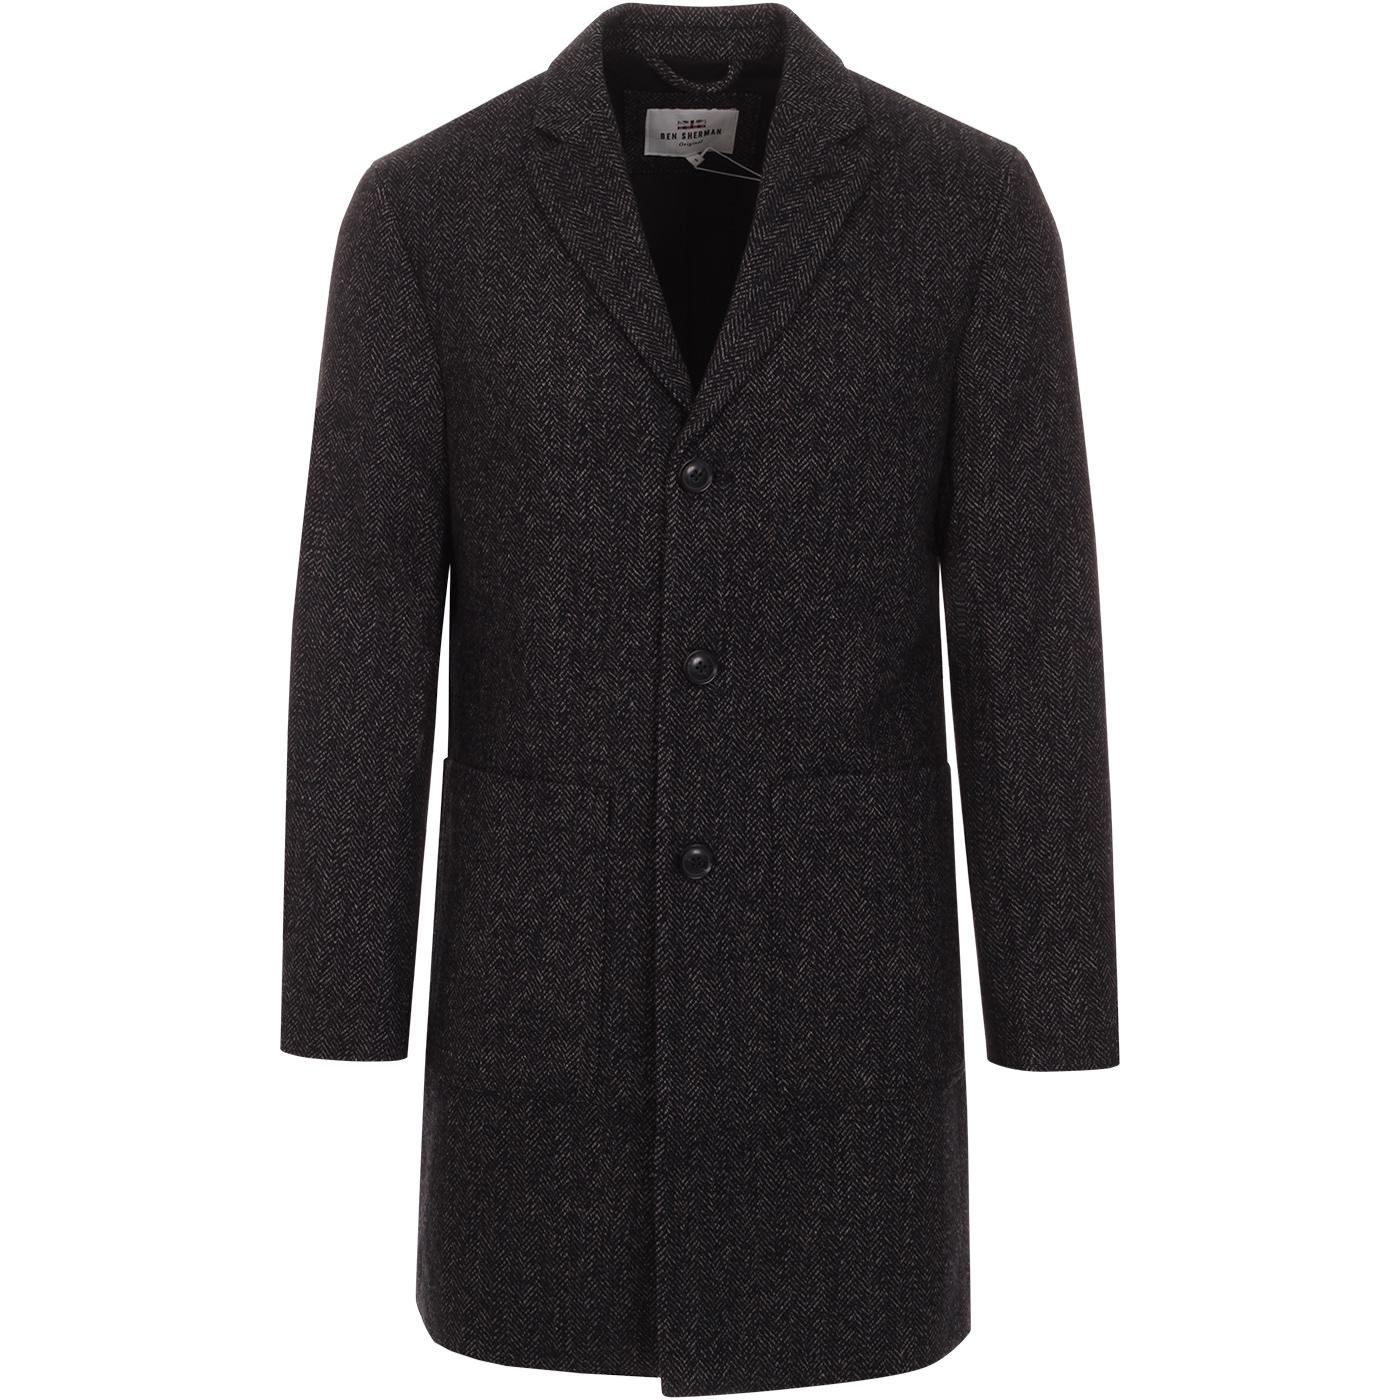 BEN SHERMAN Retro Mod Herringbone Overcoat (C)